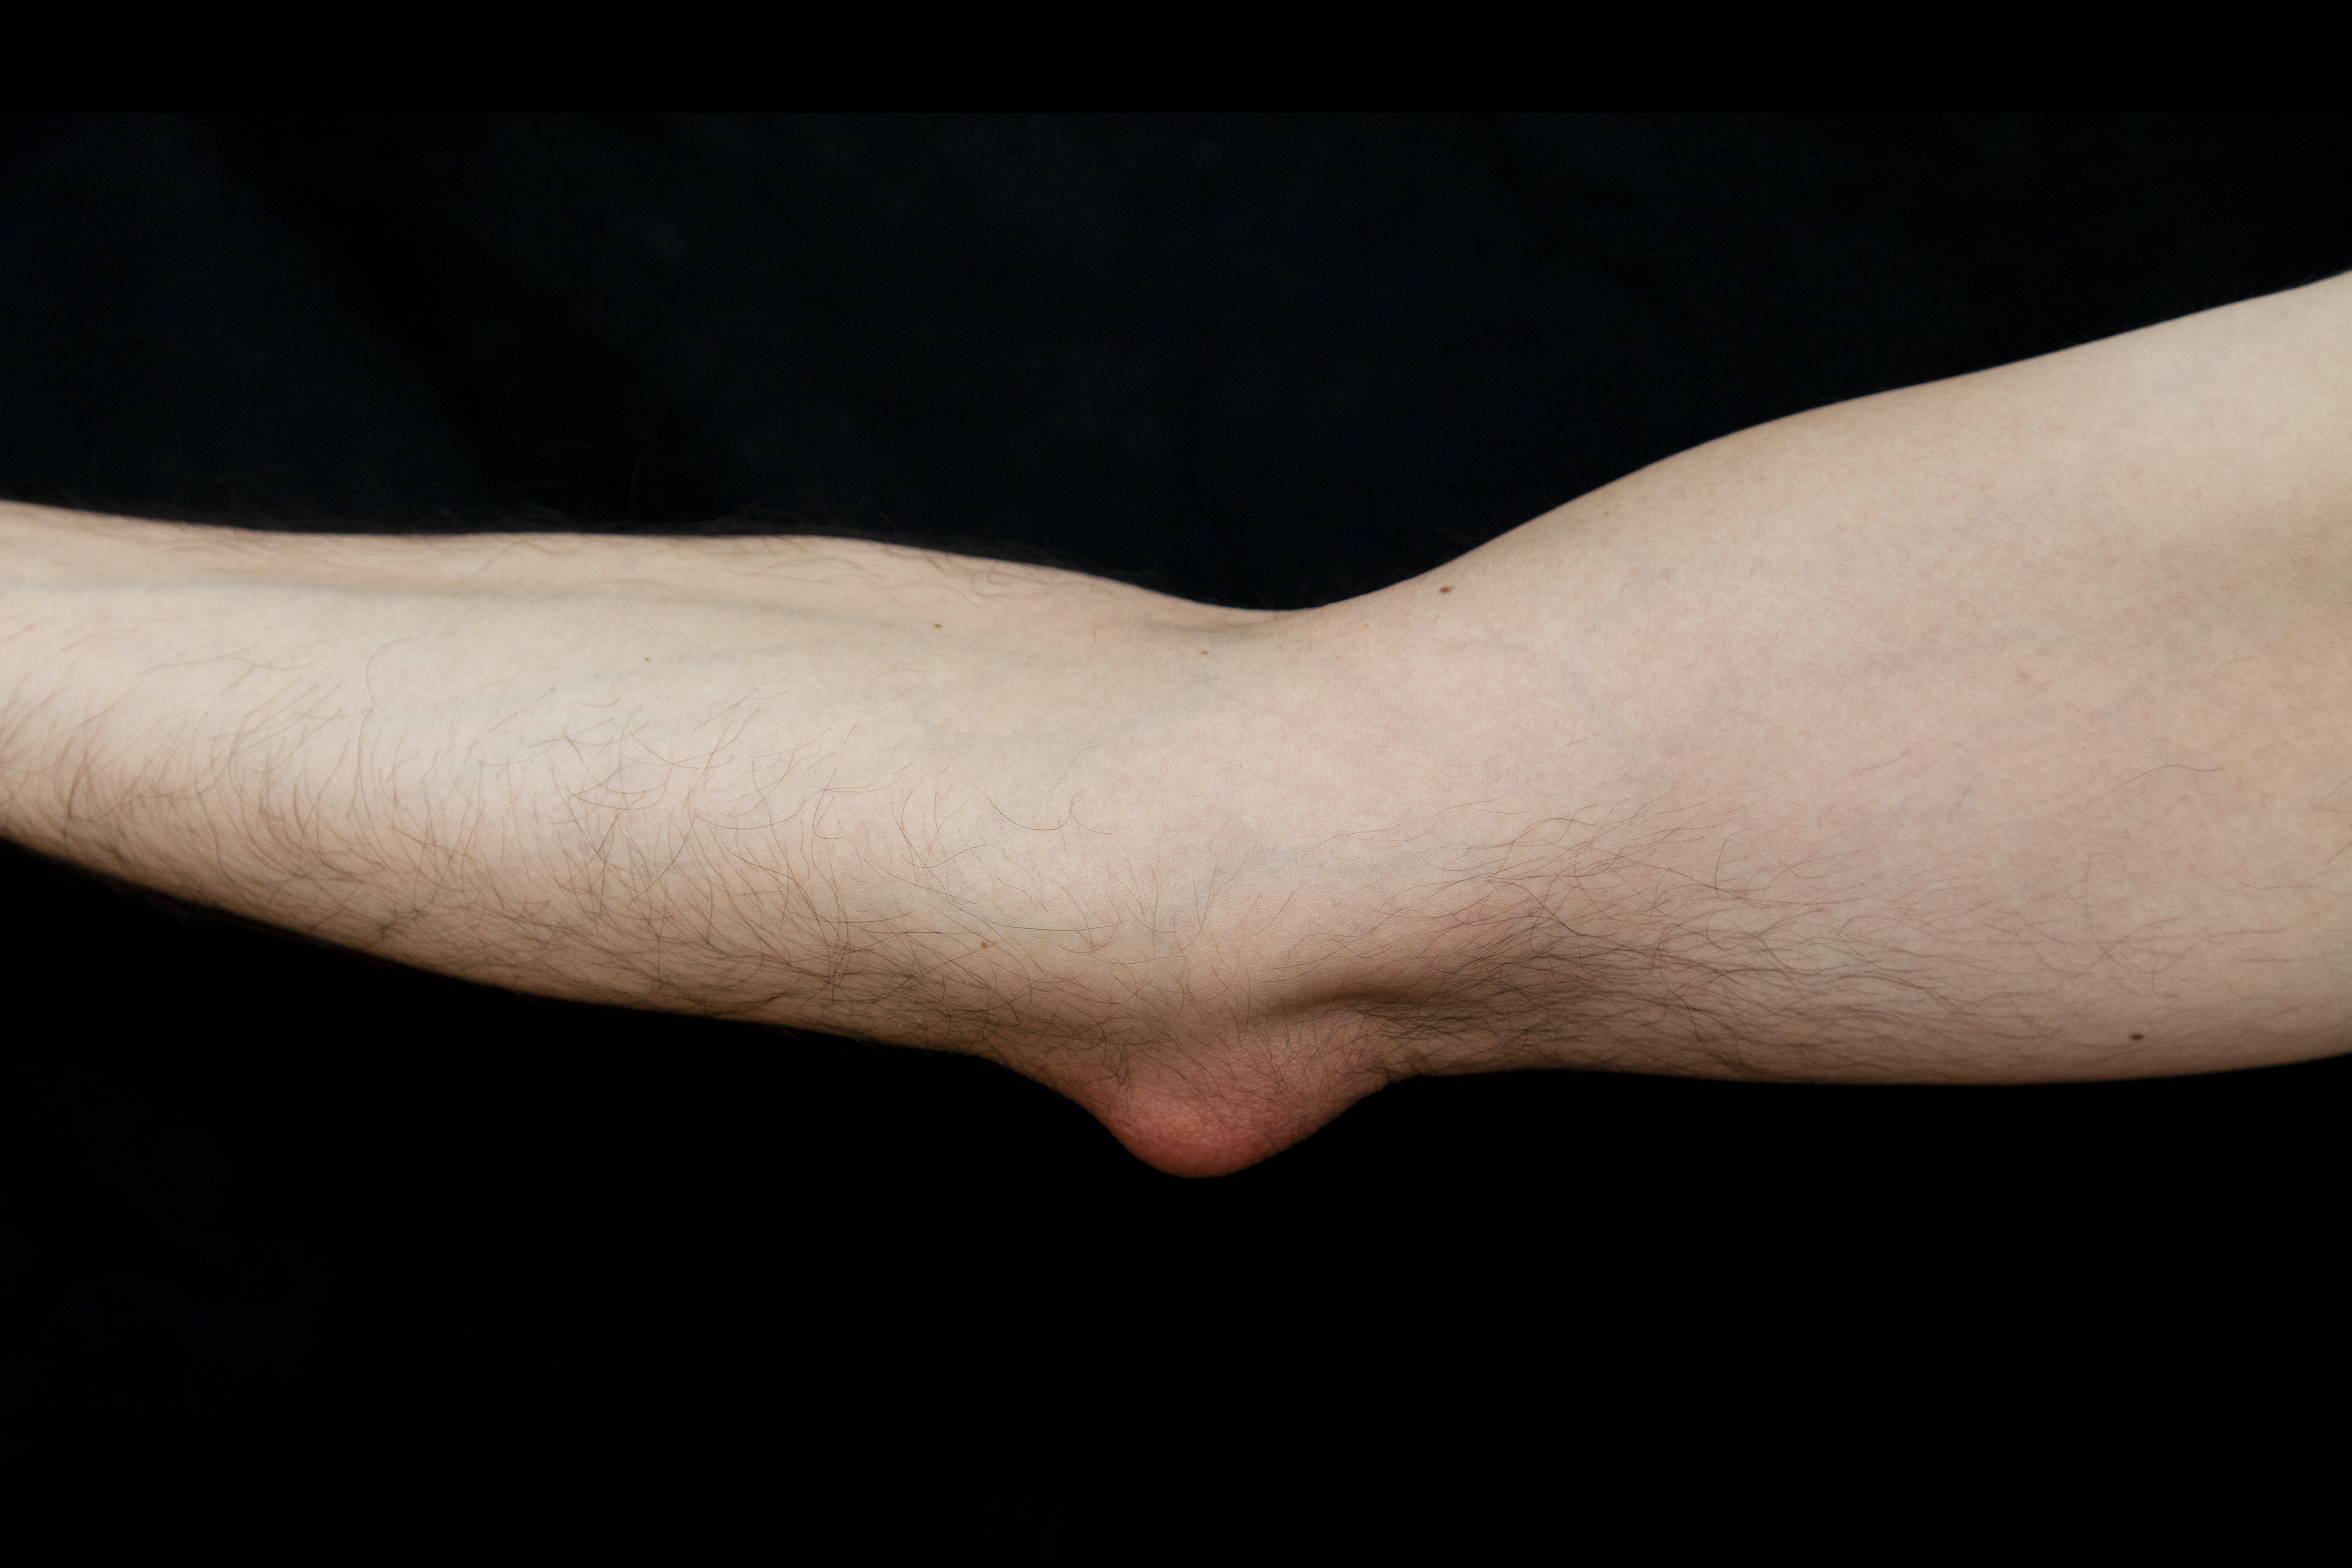 An image depicting a person suffering from elbow bump symptoms